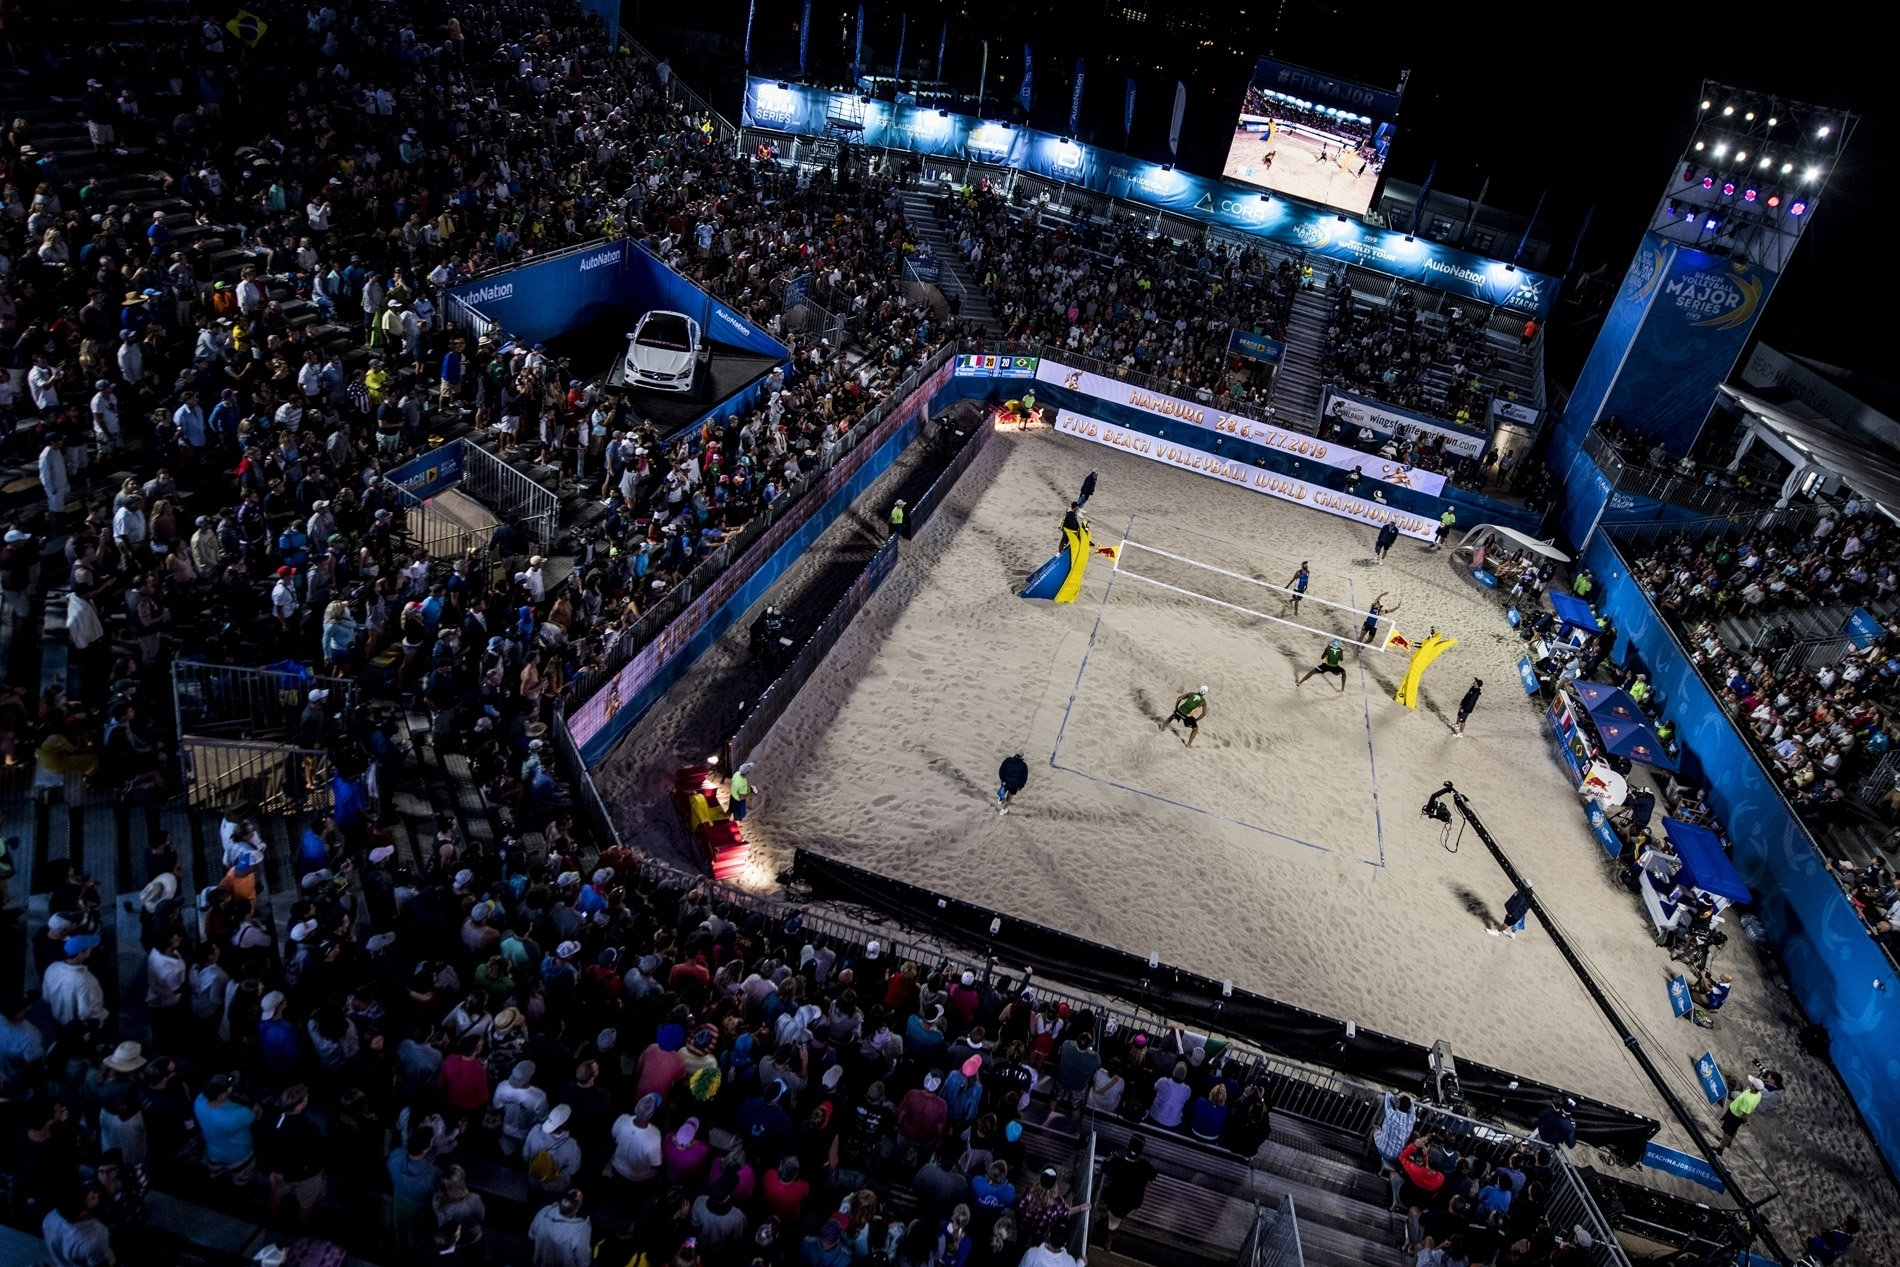 The Red Bull Beach Arena was full to see the Italians reach the final